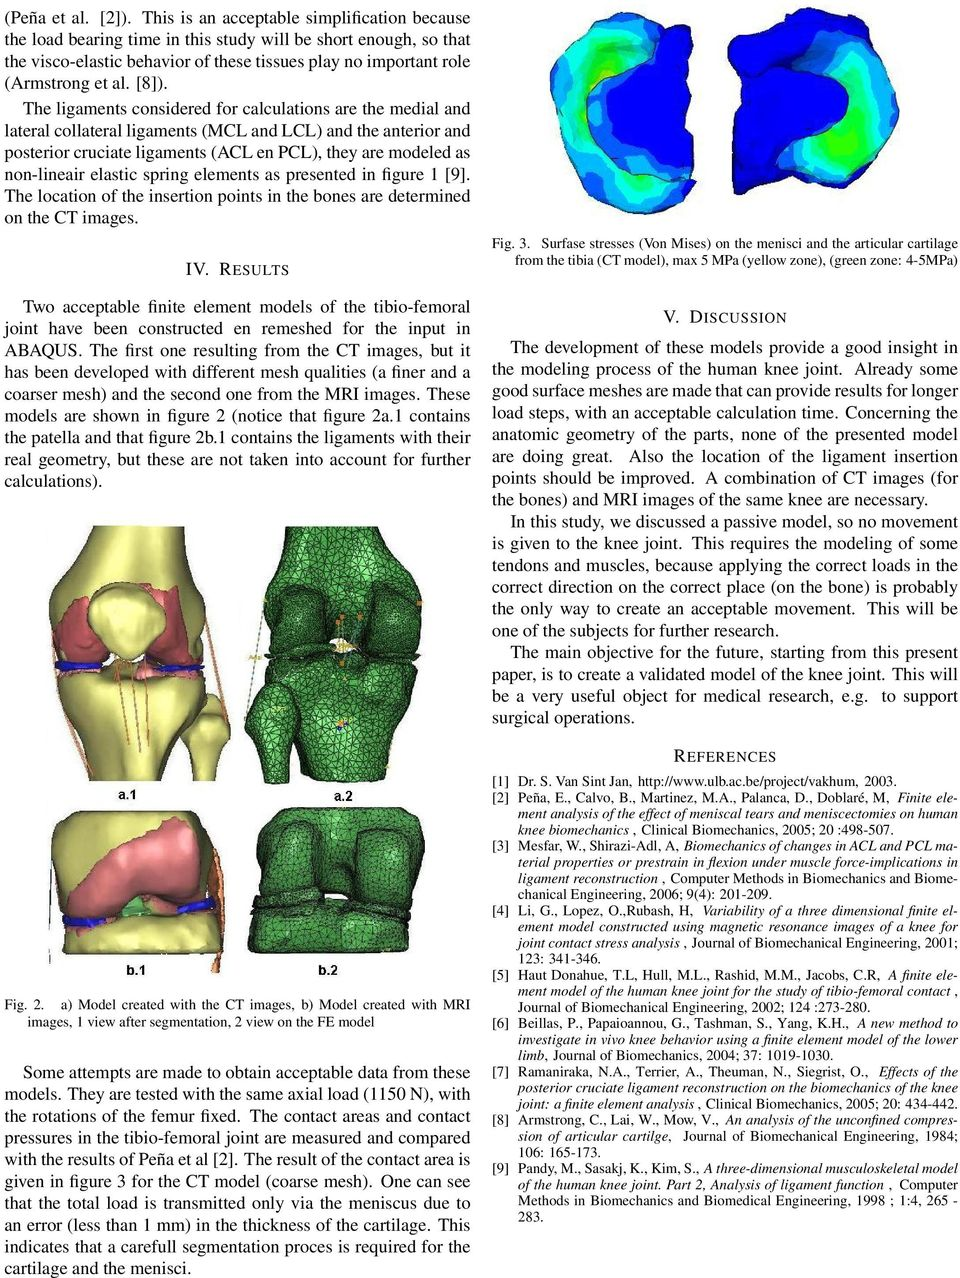 [8]). The ligaments considered for calculations are the medial and lateral collateral ligaments (MCL and LCL) and the anterior and posterior cruciate ligaments (ACL en PCL), they are modeled as